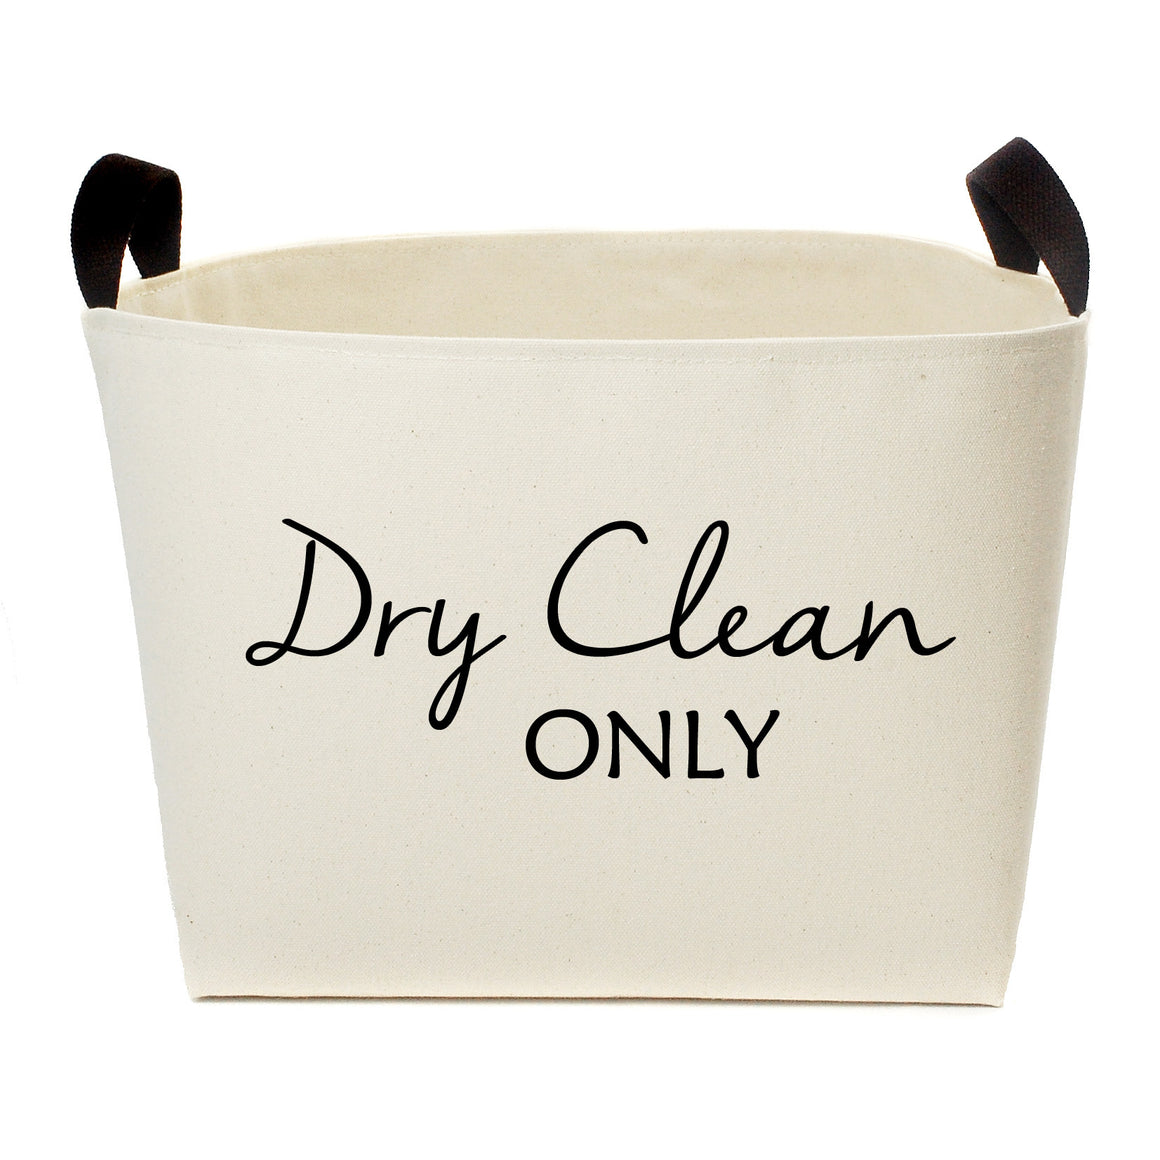 Dry Clean Only Canvas Storage Bin - A Southern Bucket - 5